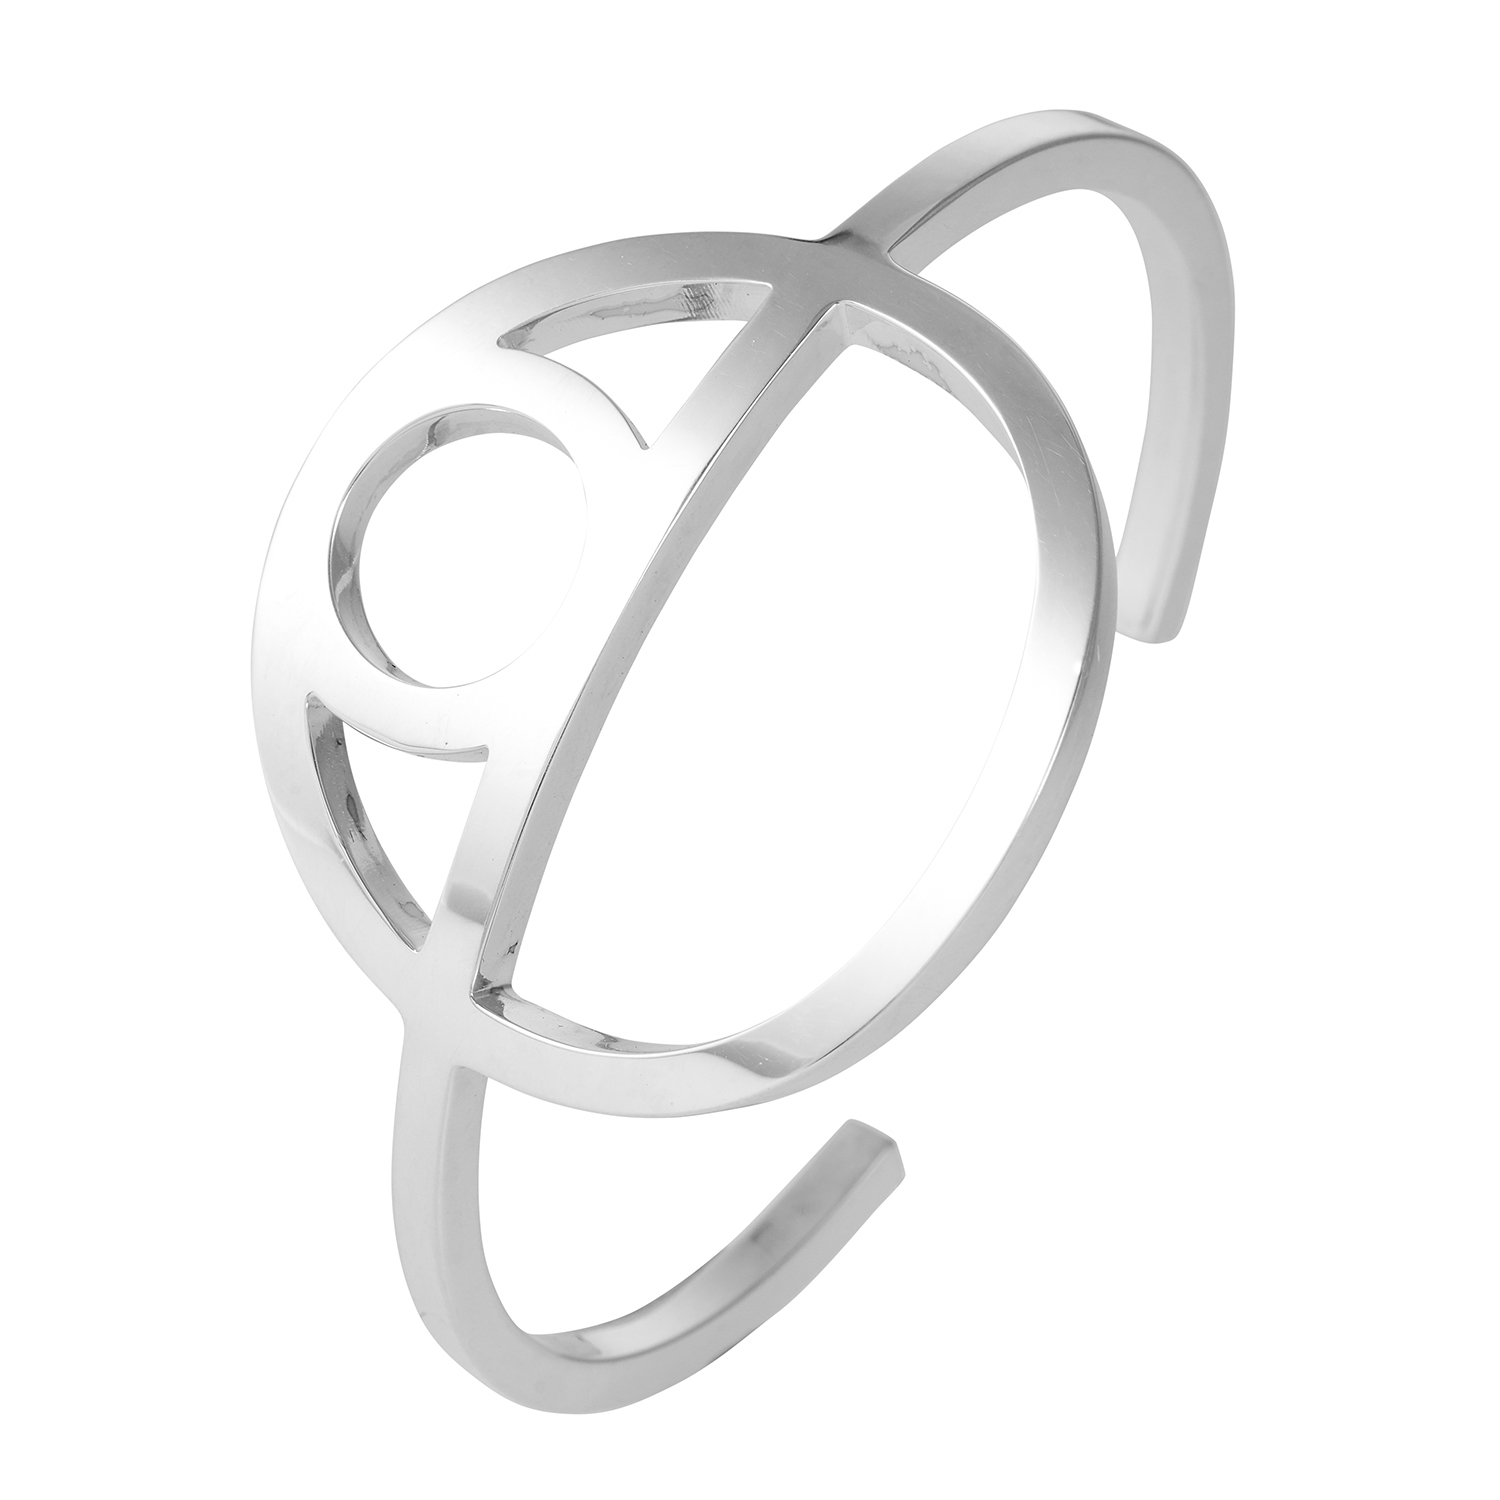 Los 347 - A CHAINE D'ANCRE GAME BRACELET, HERMES in sterling silver designed as an abstract anchor link set to